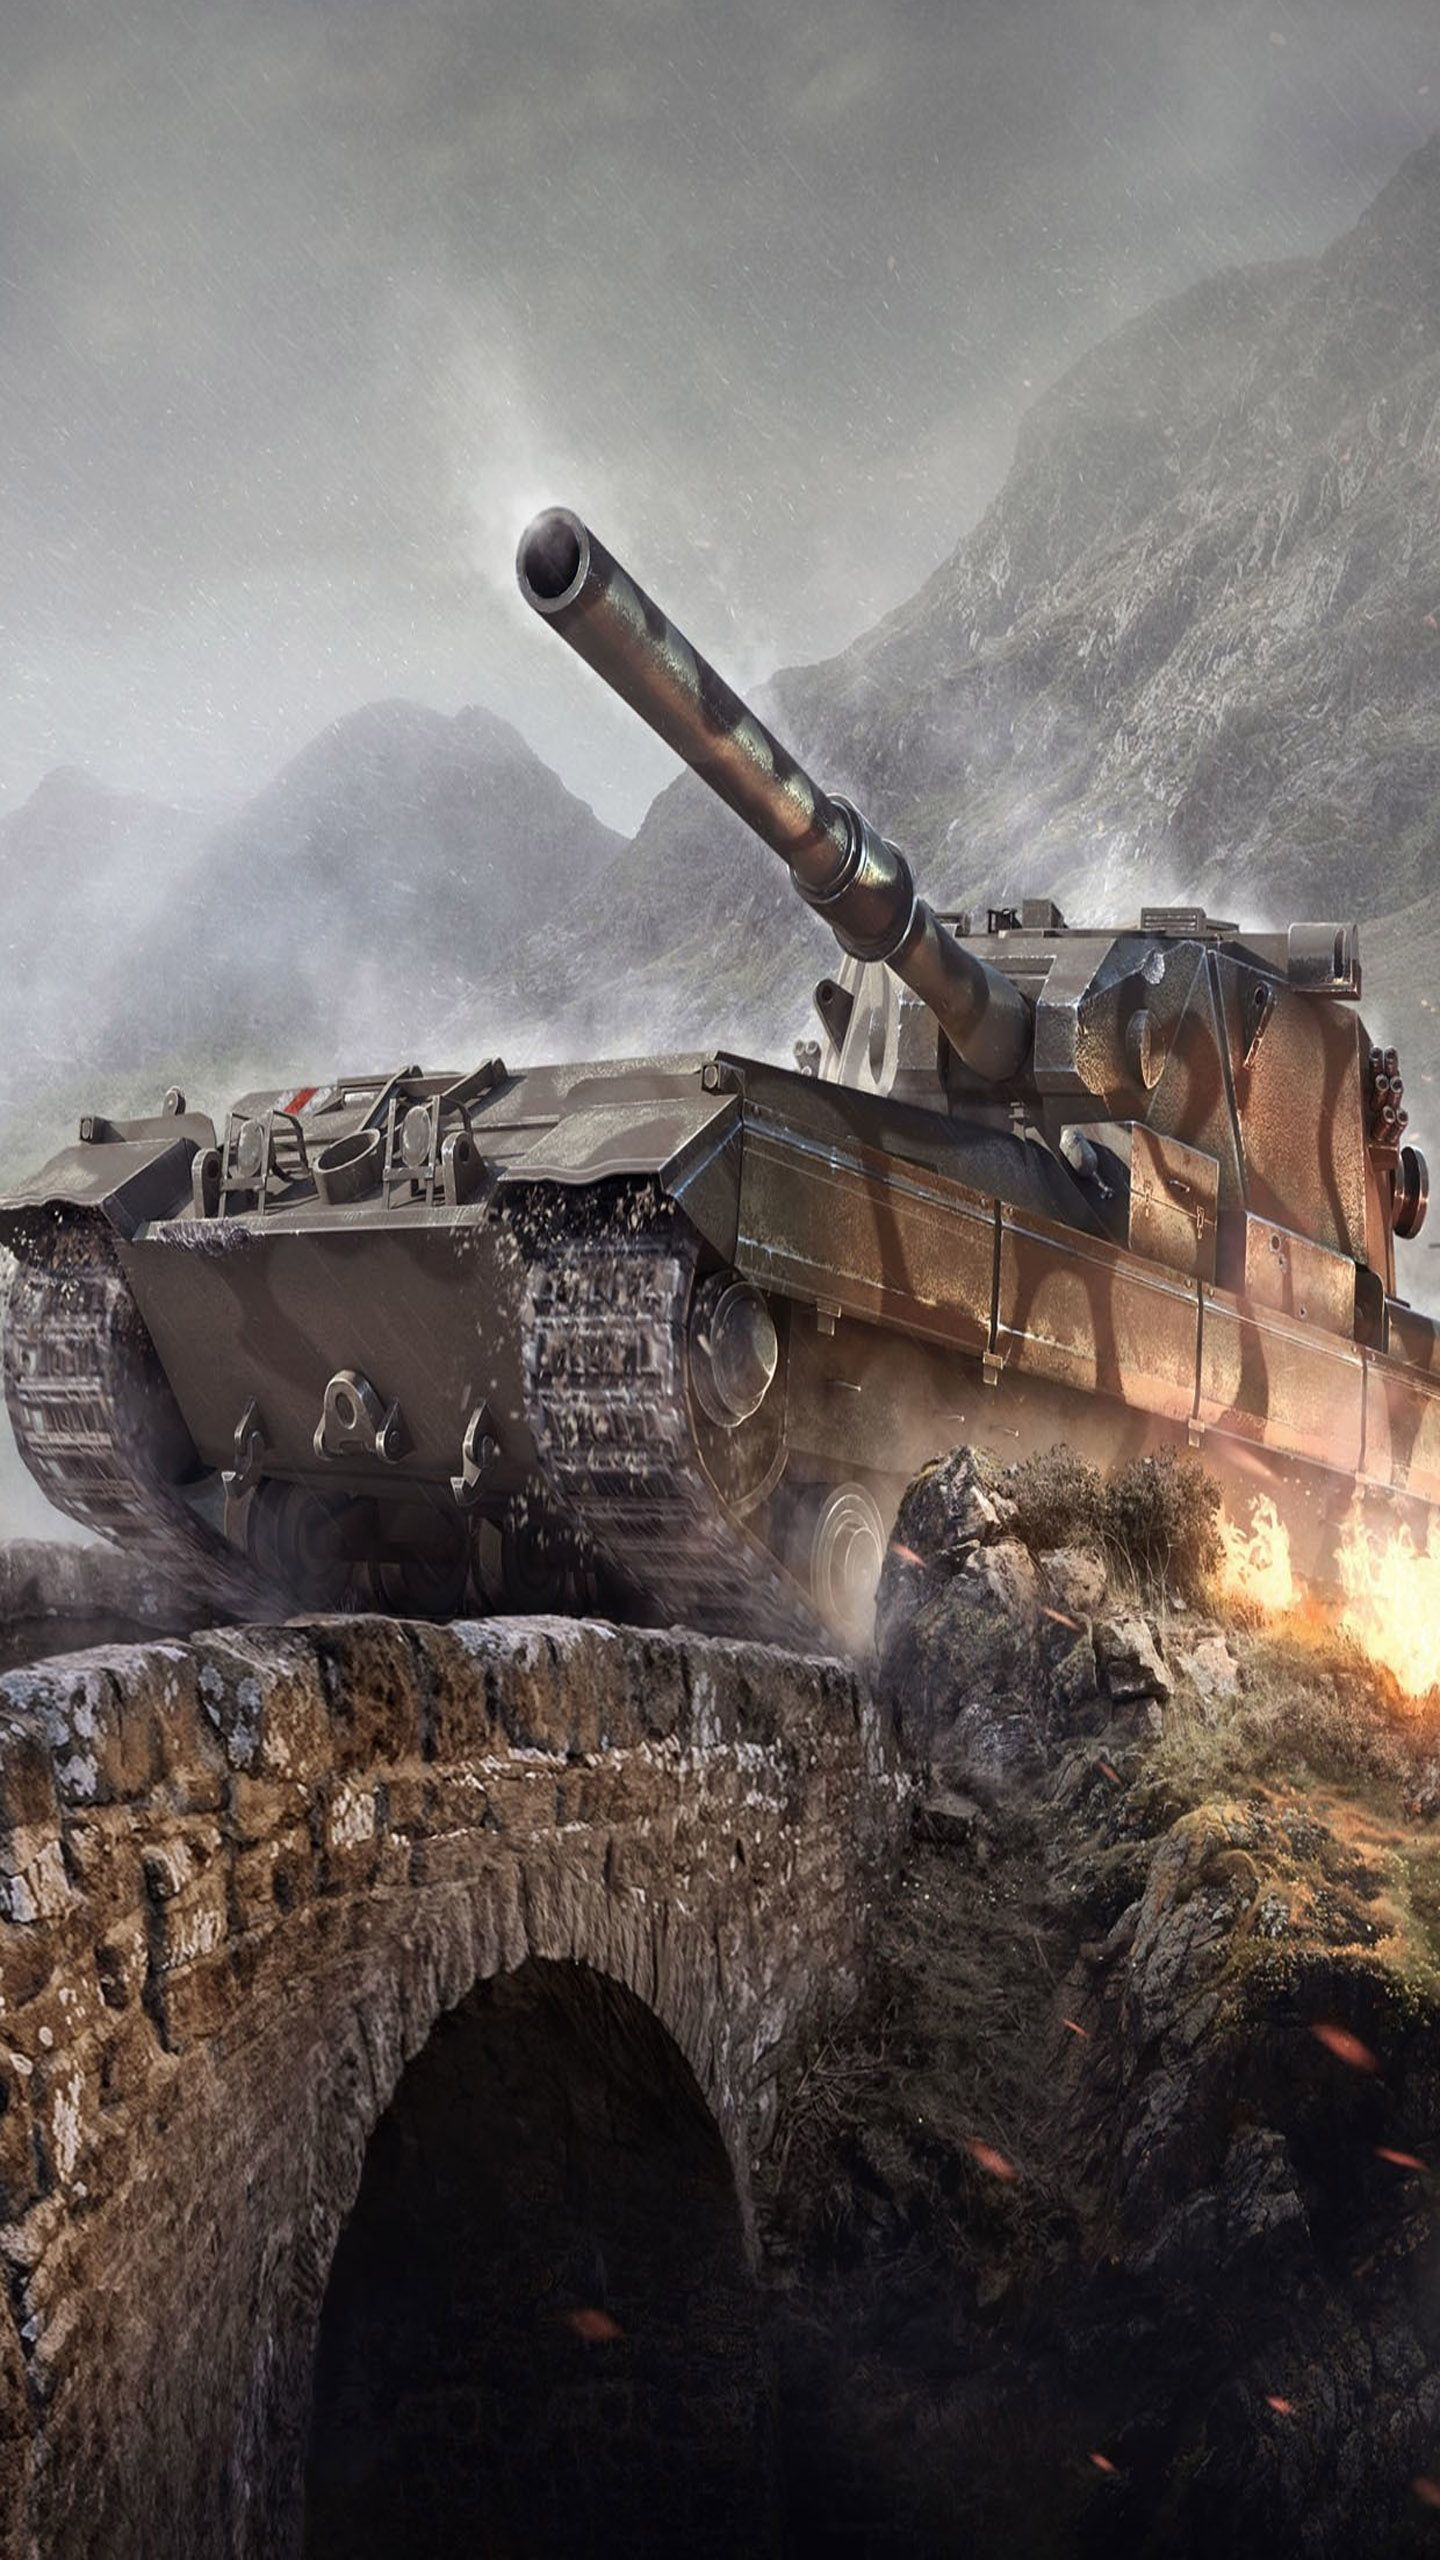 T34 World Of Tanks Wallpapers 75 Wallpapers Art Wallpapers HD Wallpapers Download Free Images Wallpaper [1000image.com]